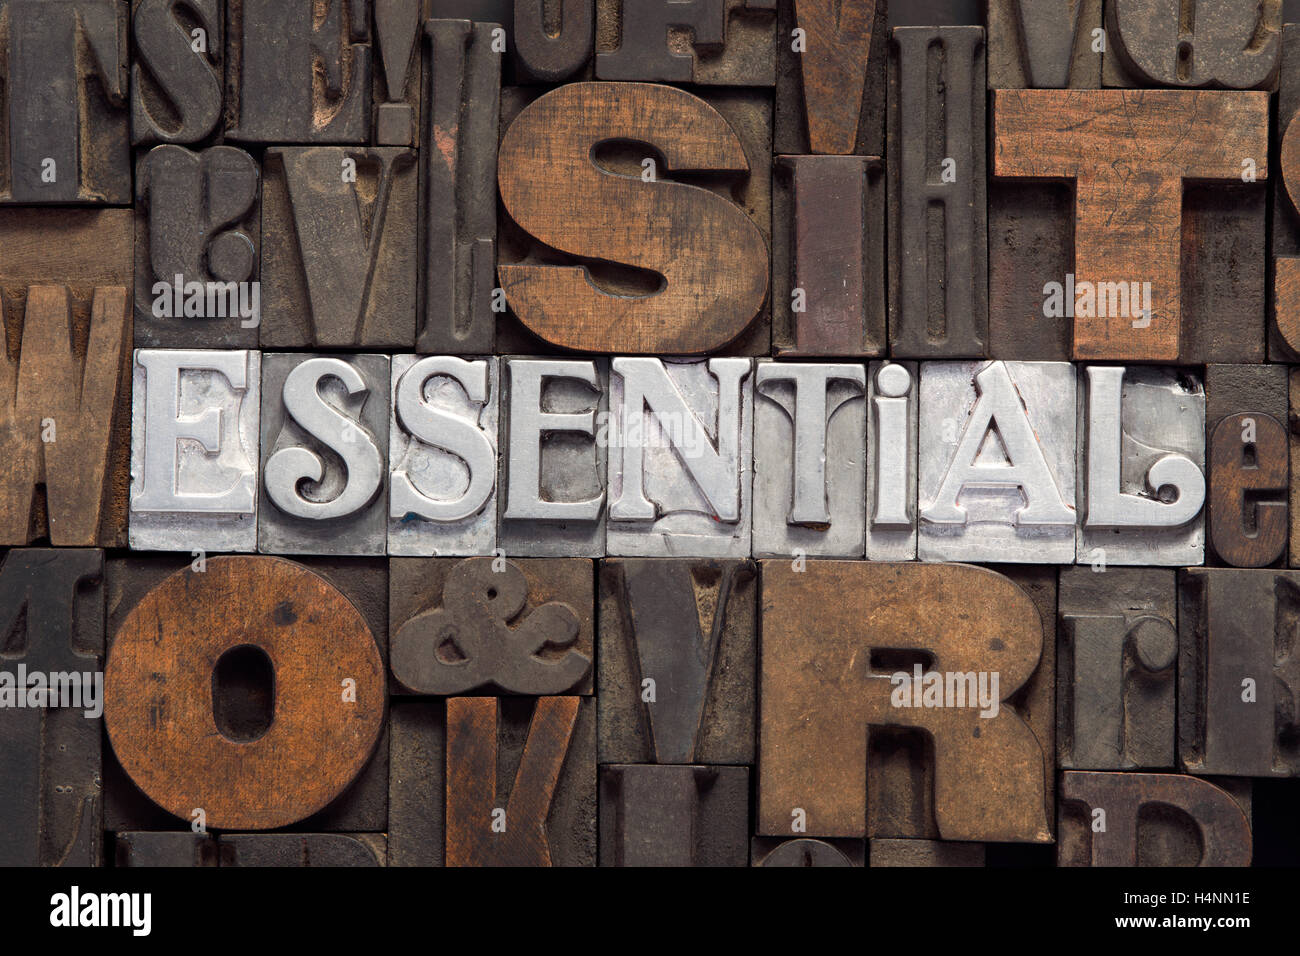 essential word concept made from metallic letterpress blocks inside many wooden letters background - Stock Image